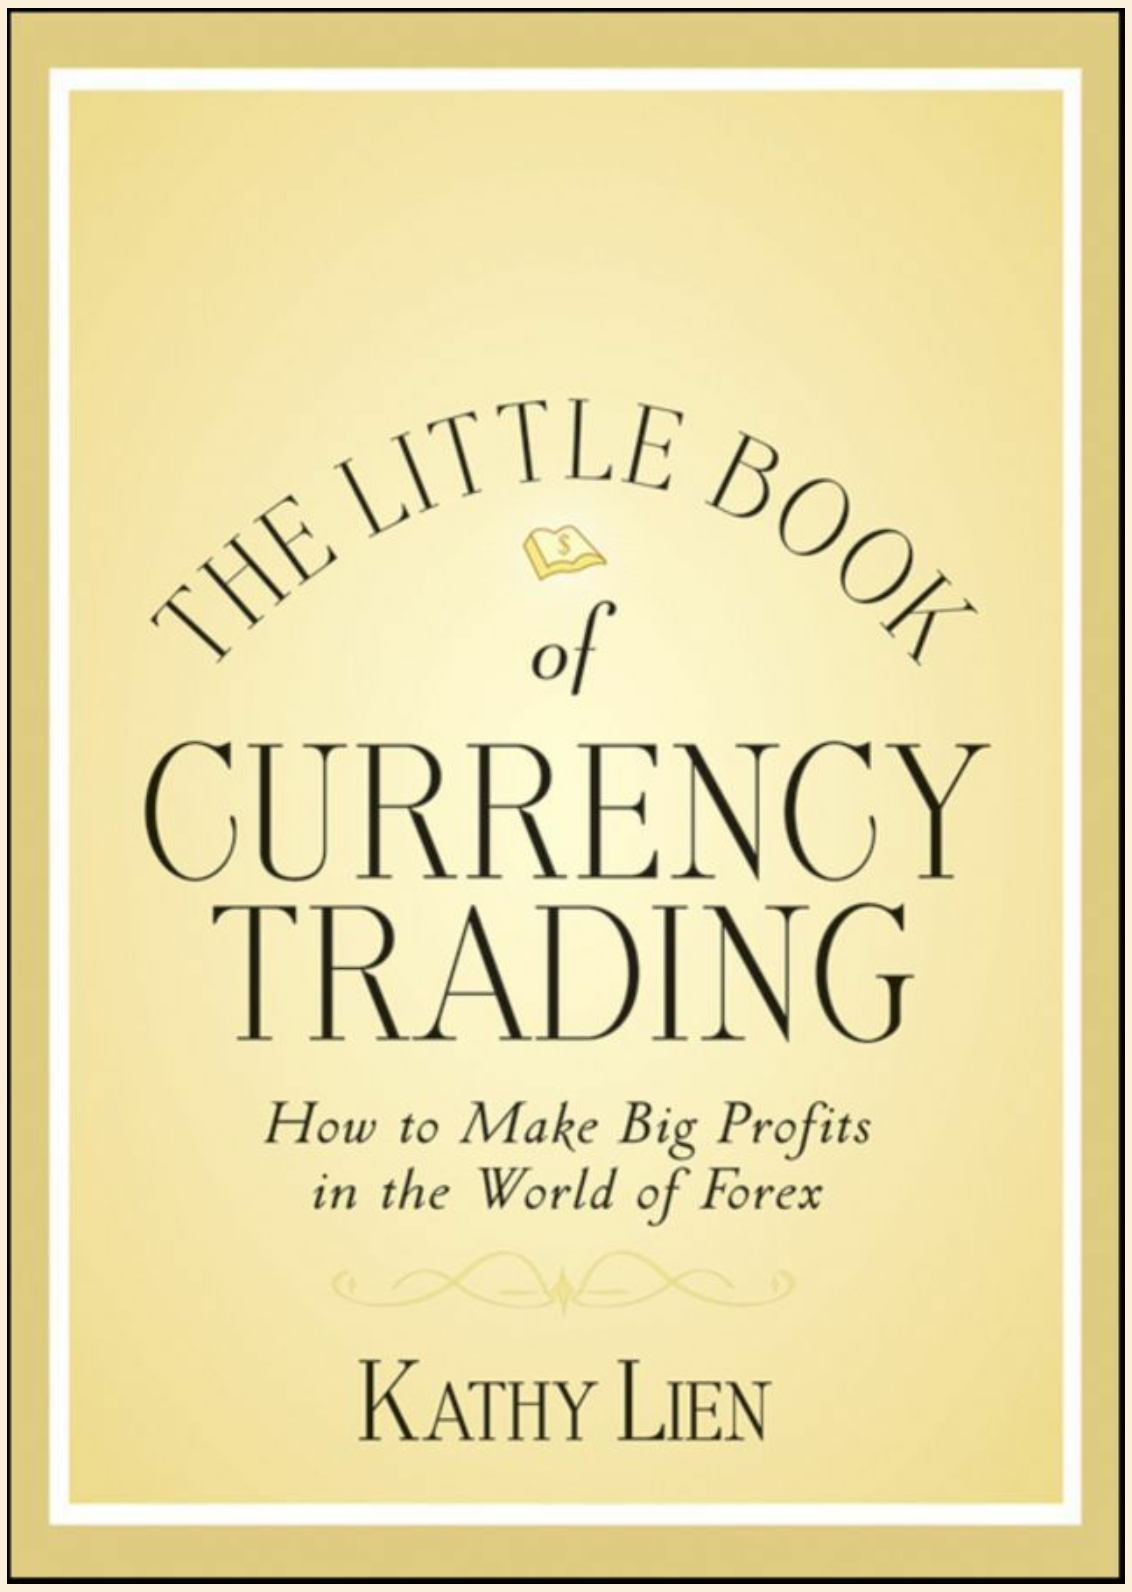 Forex trading book reviews